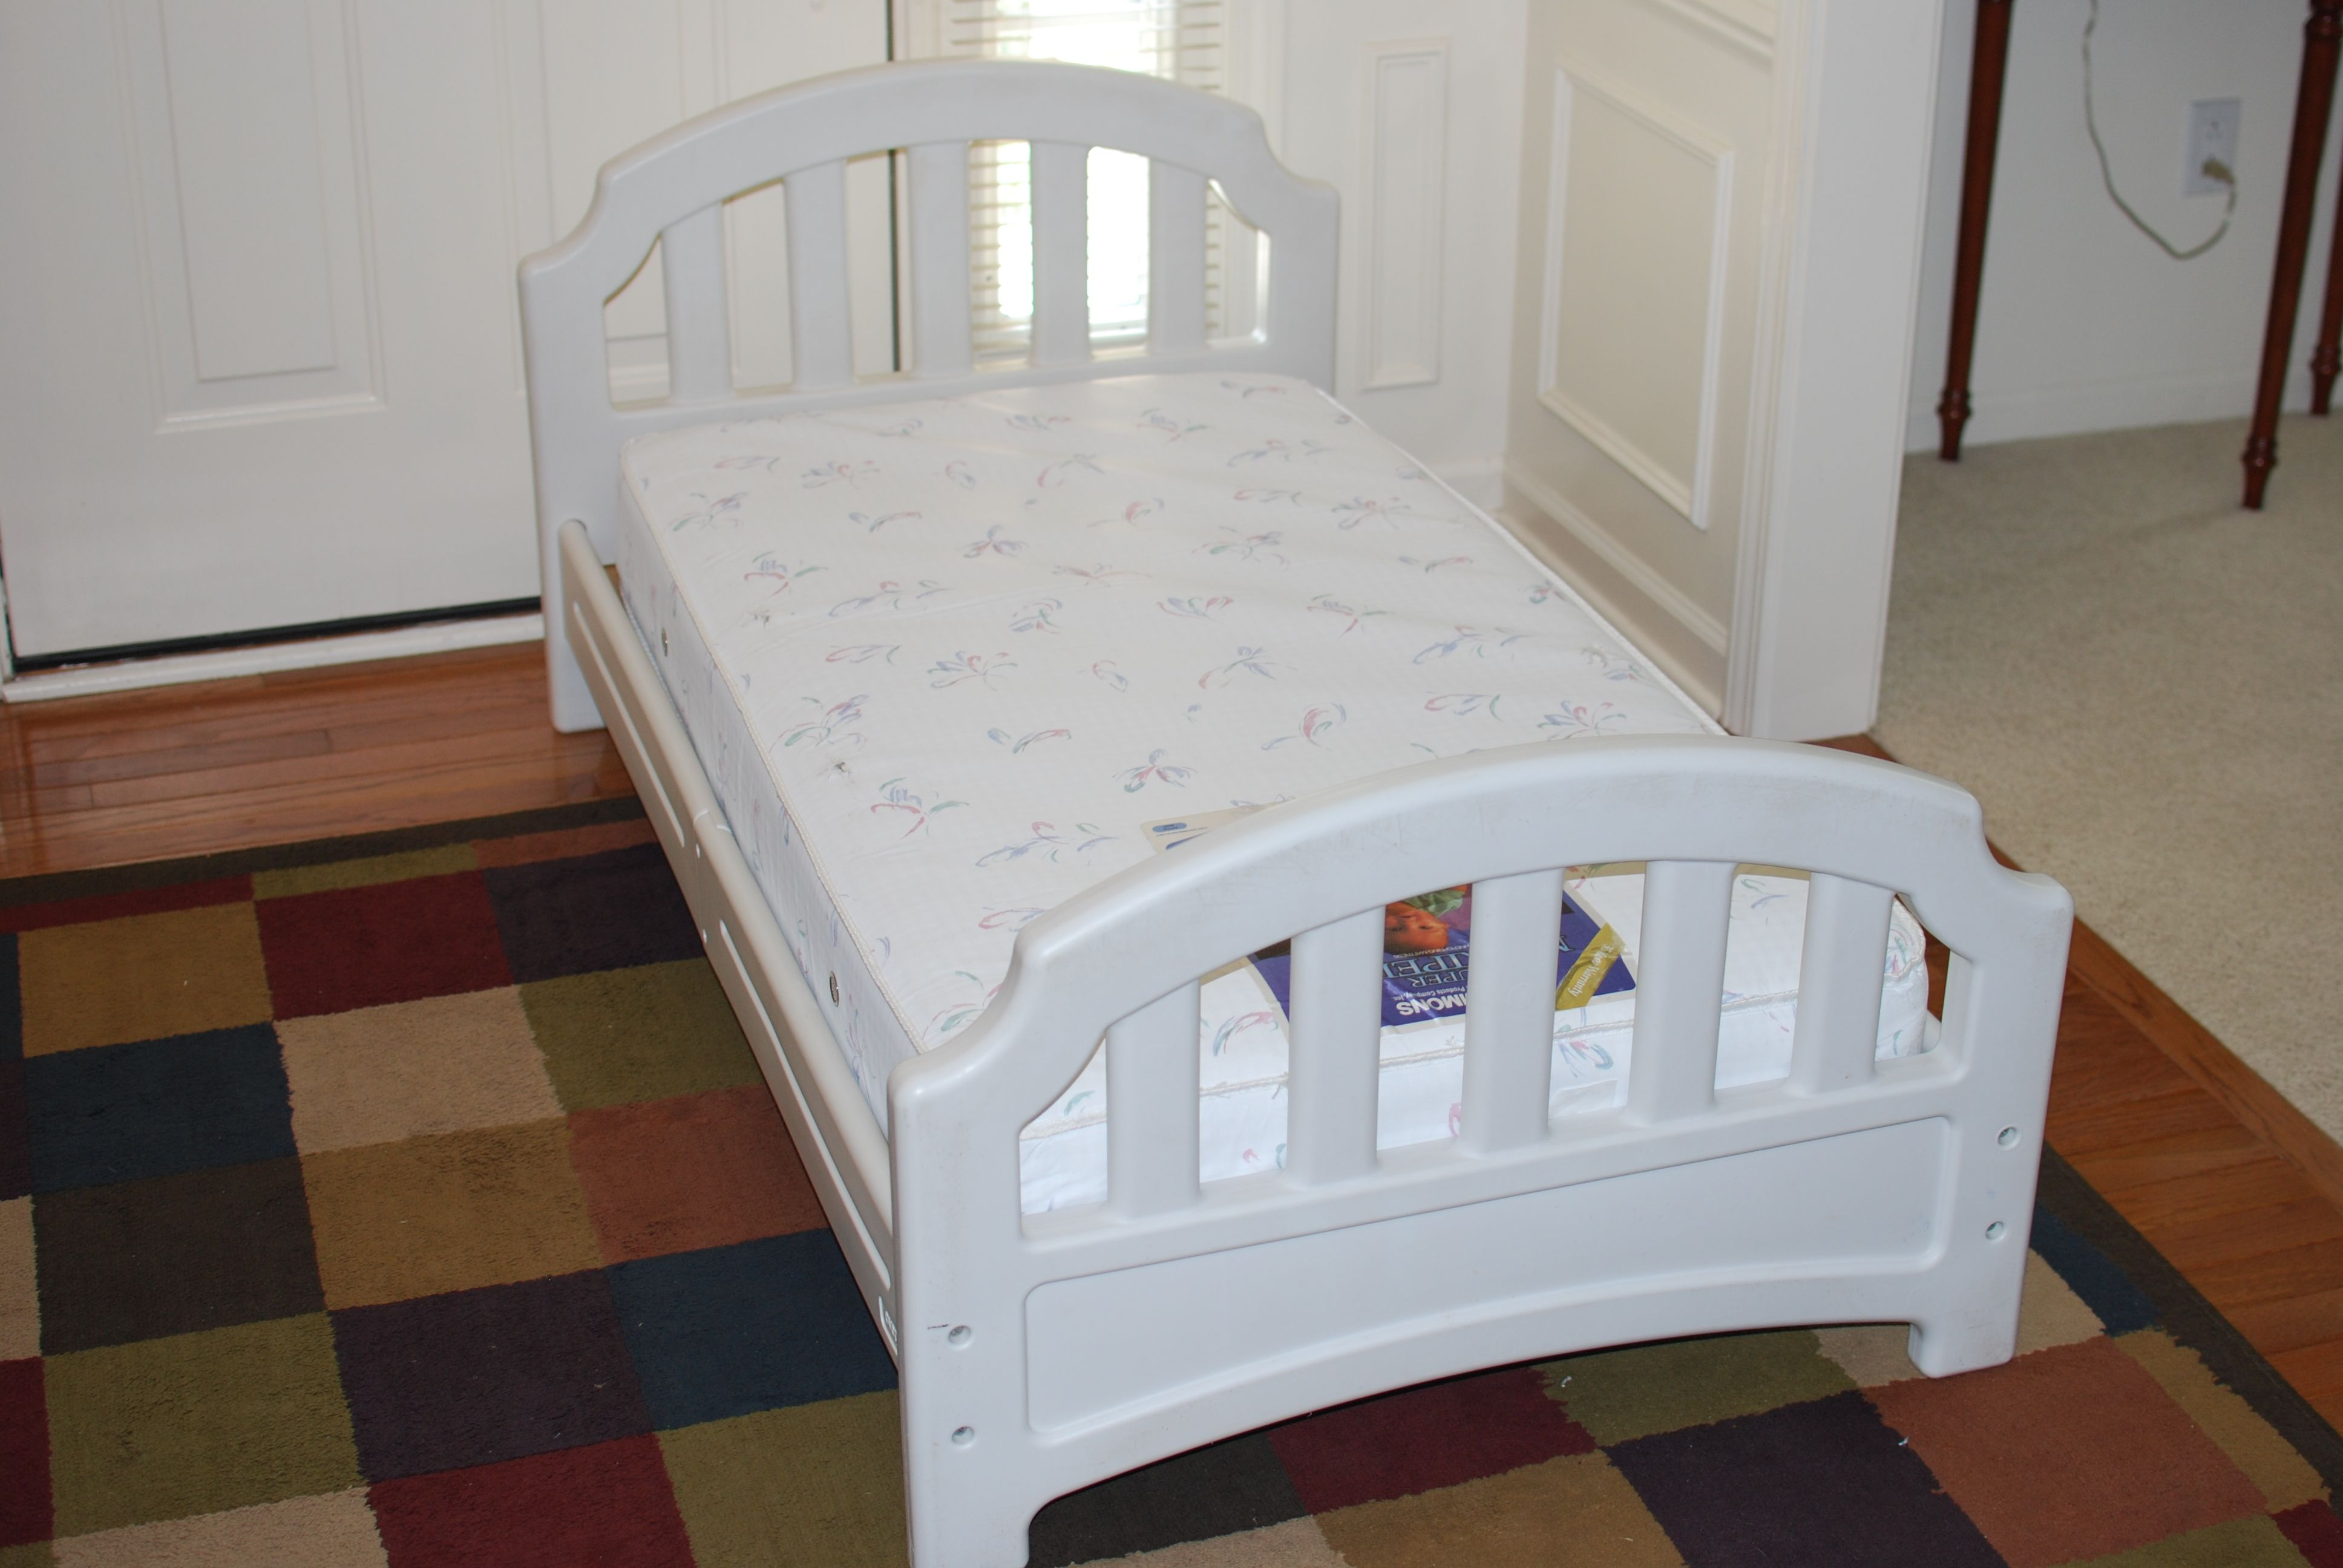 White Evenflow Plastic Toddler Bed With Simmons Super Maxipedic Mattress Is In Good